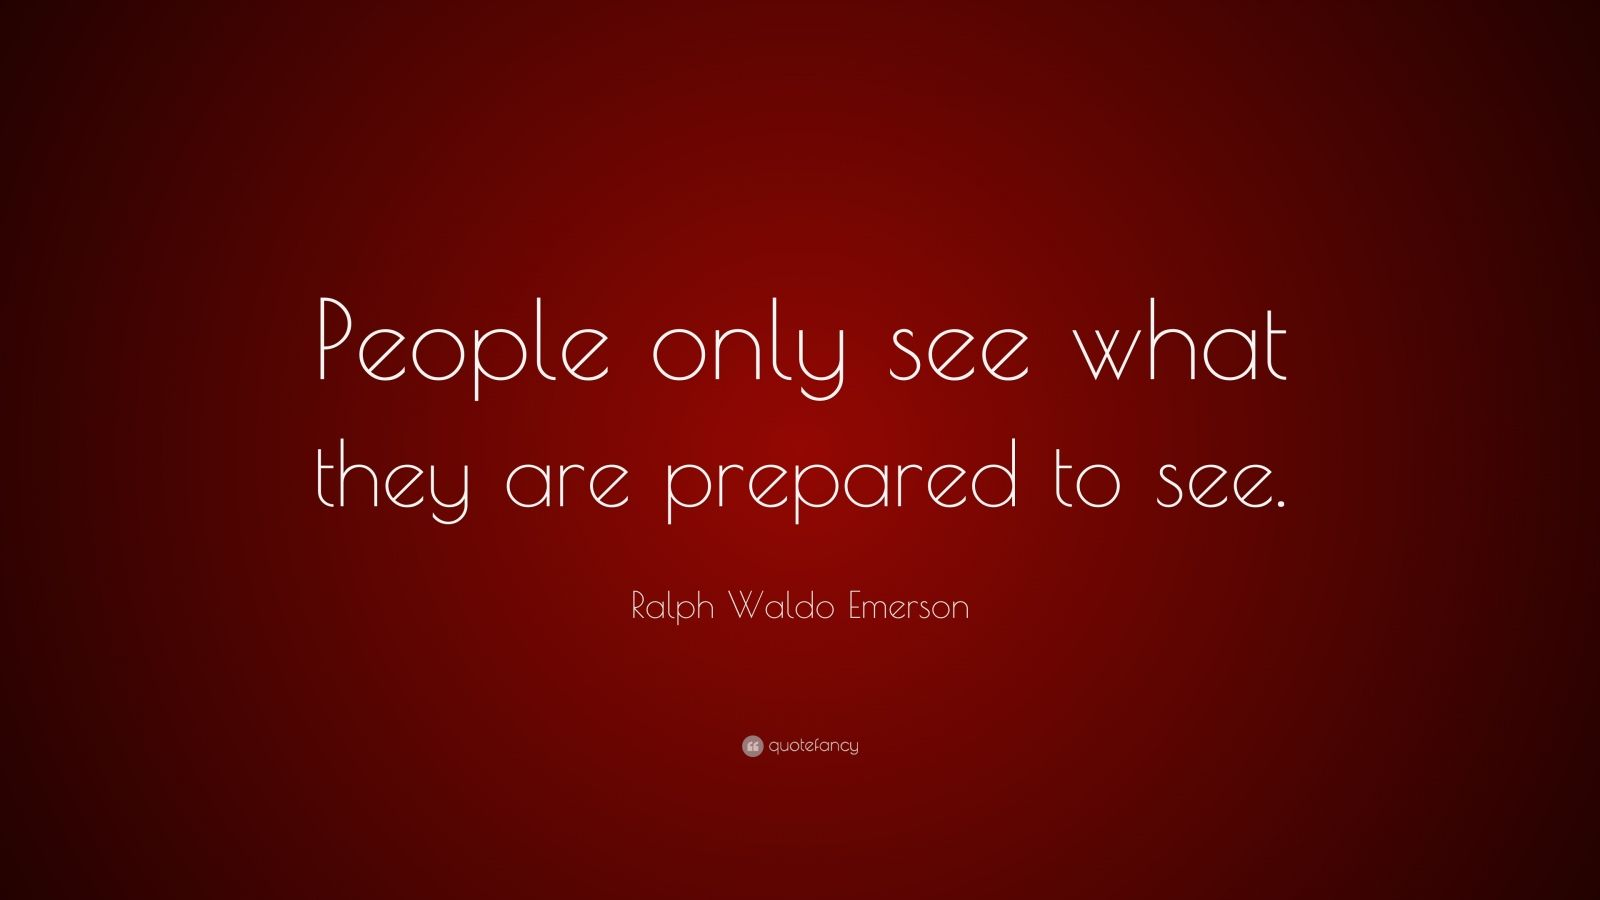 people only see they prepared see analyzation quote hassan